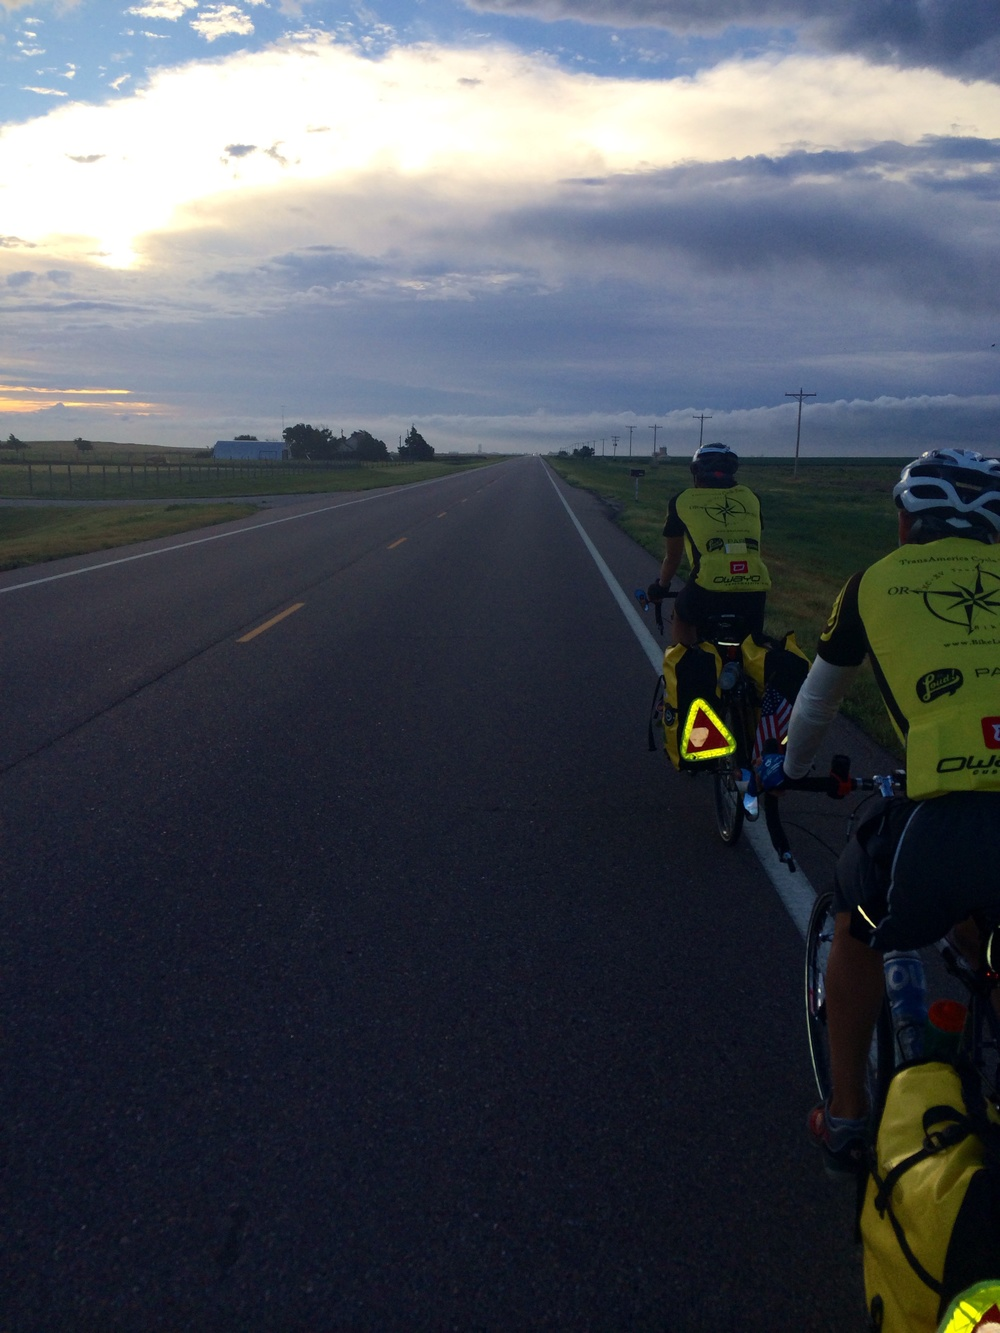 Morning spin class. The crew rolls out across Kansas at dawn in the big ring.